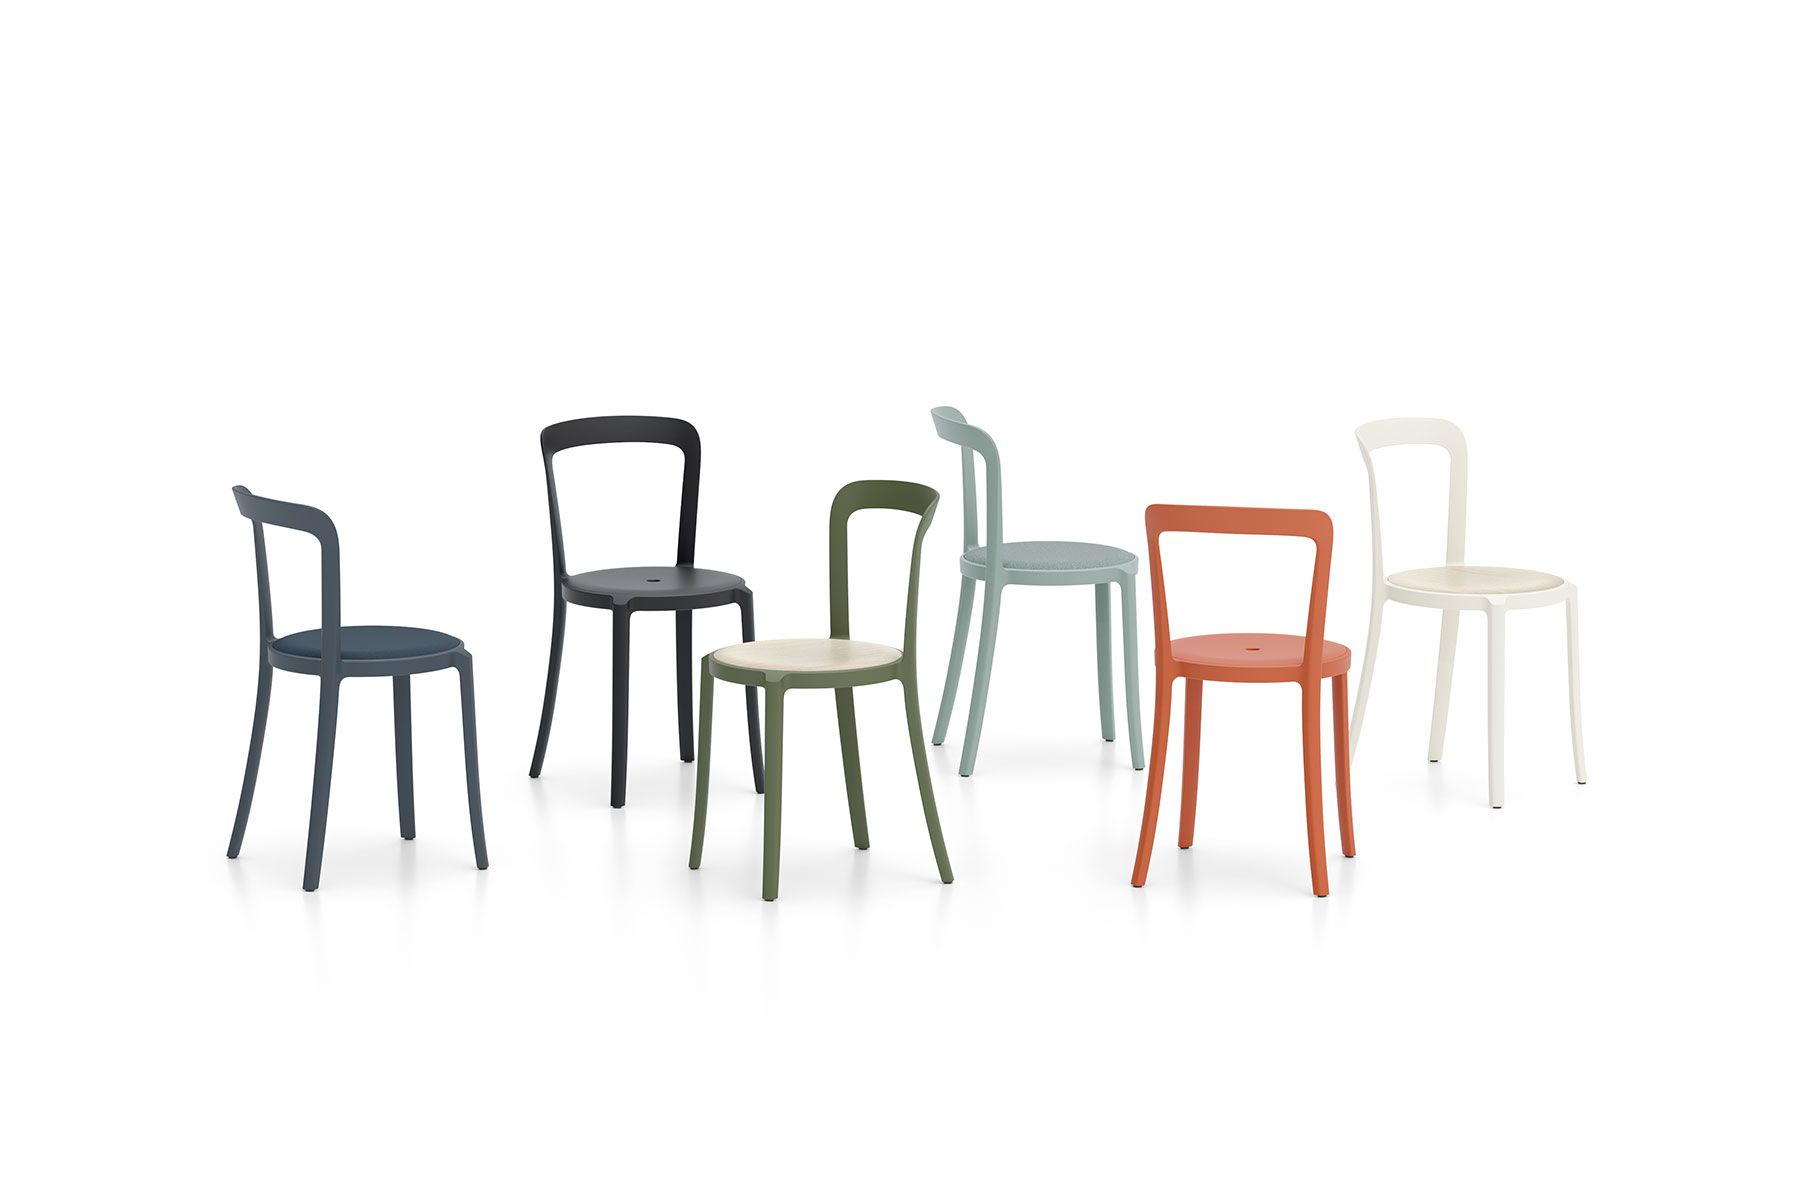 Emeco's Latest Chair Is Virtually Indestructible – SURFACE